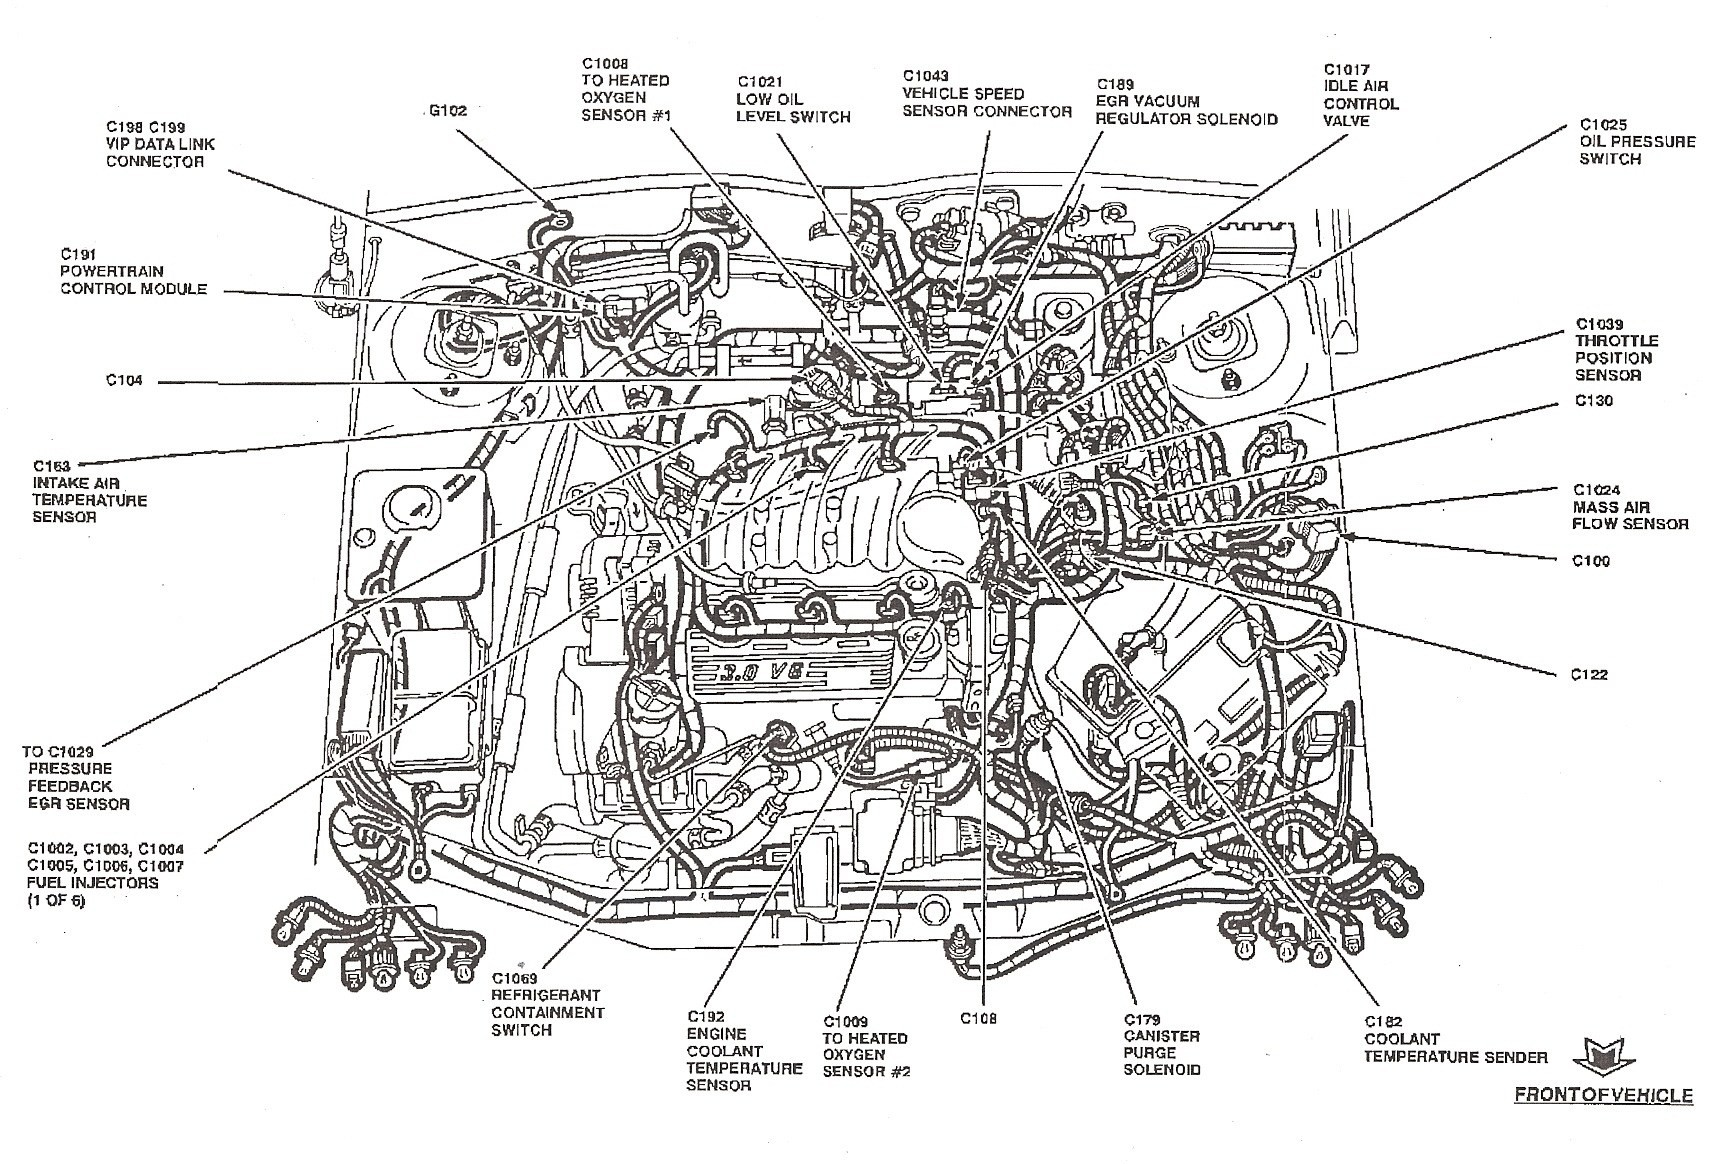 2002 ford taurus fuel system diagram wiring diagram 02 taurus wiring diagram 2002 ford taurus fuel pump wiring diagram #10